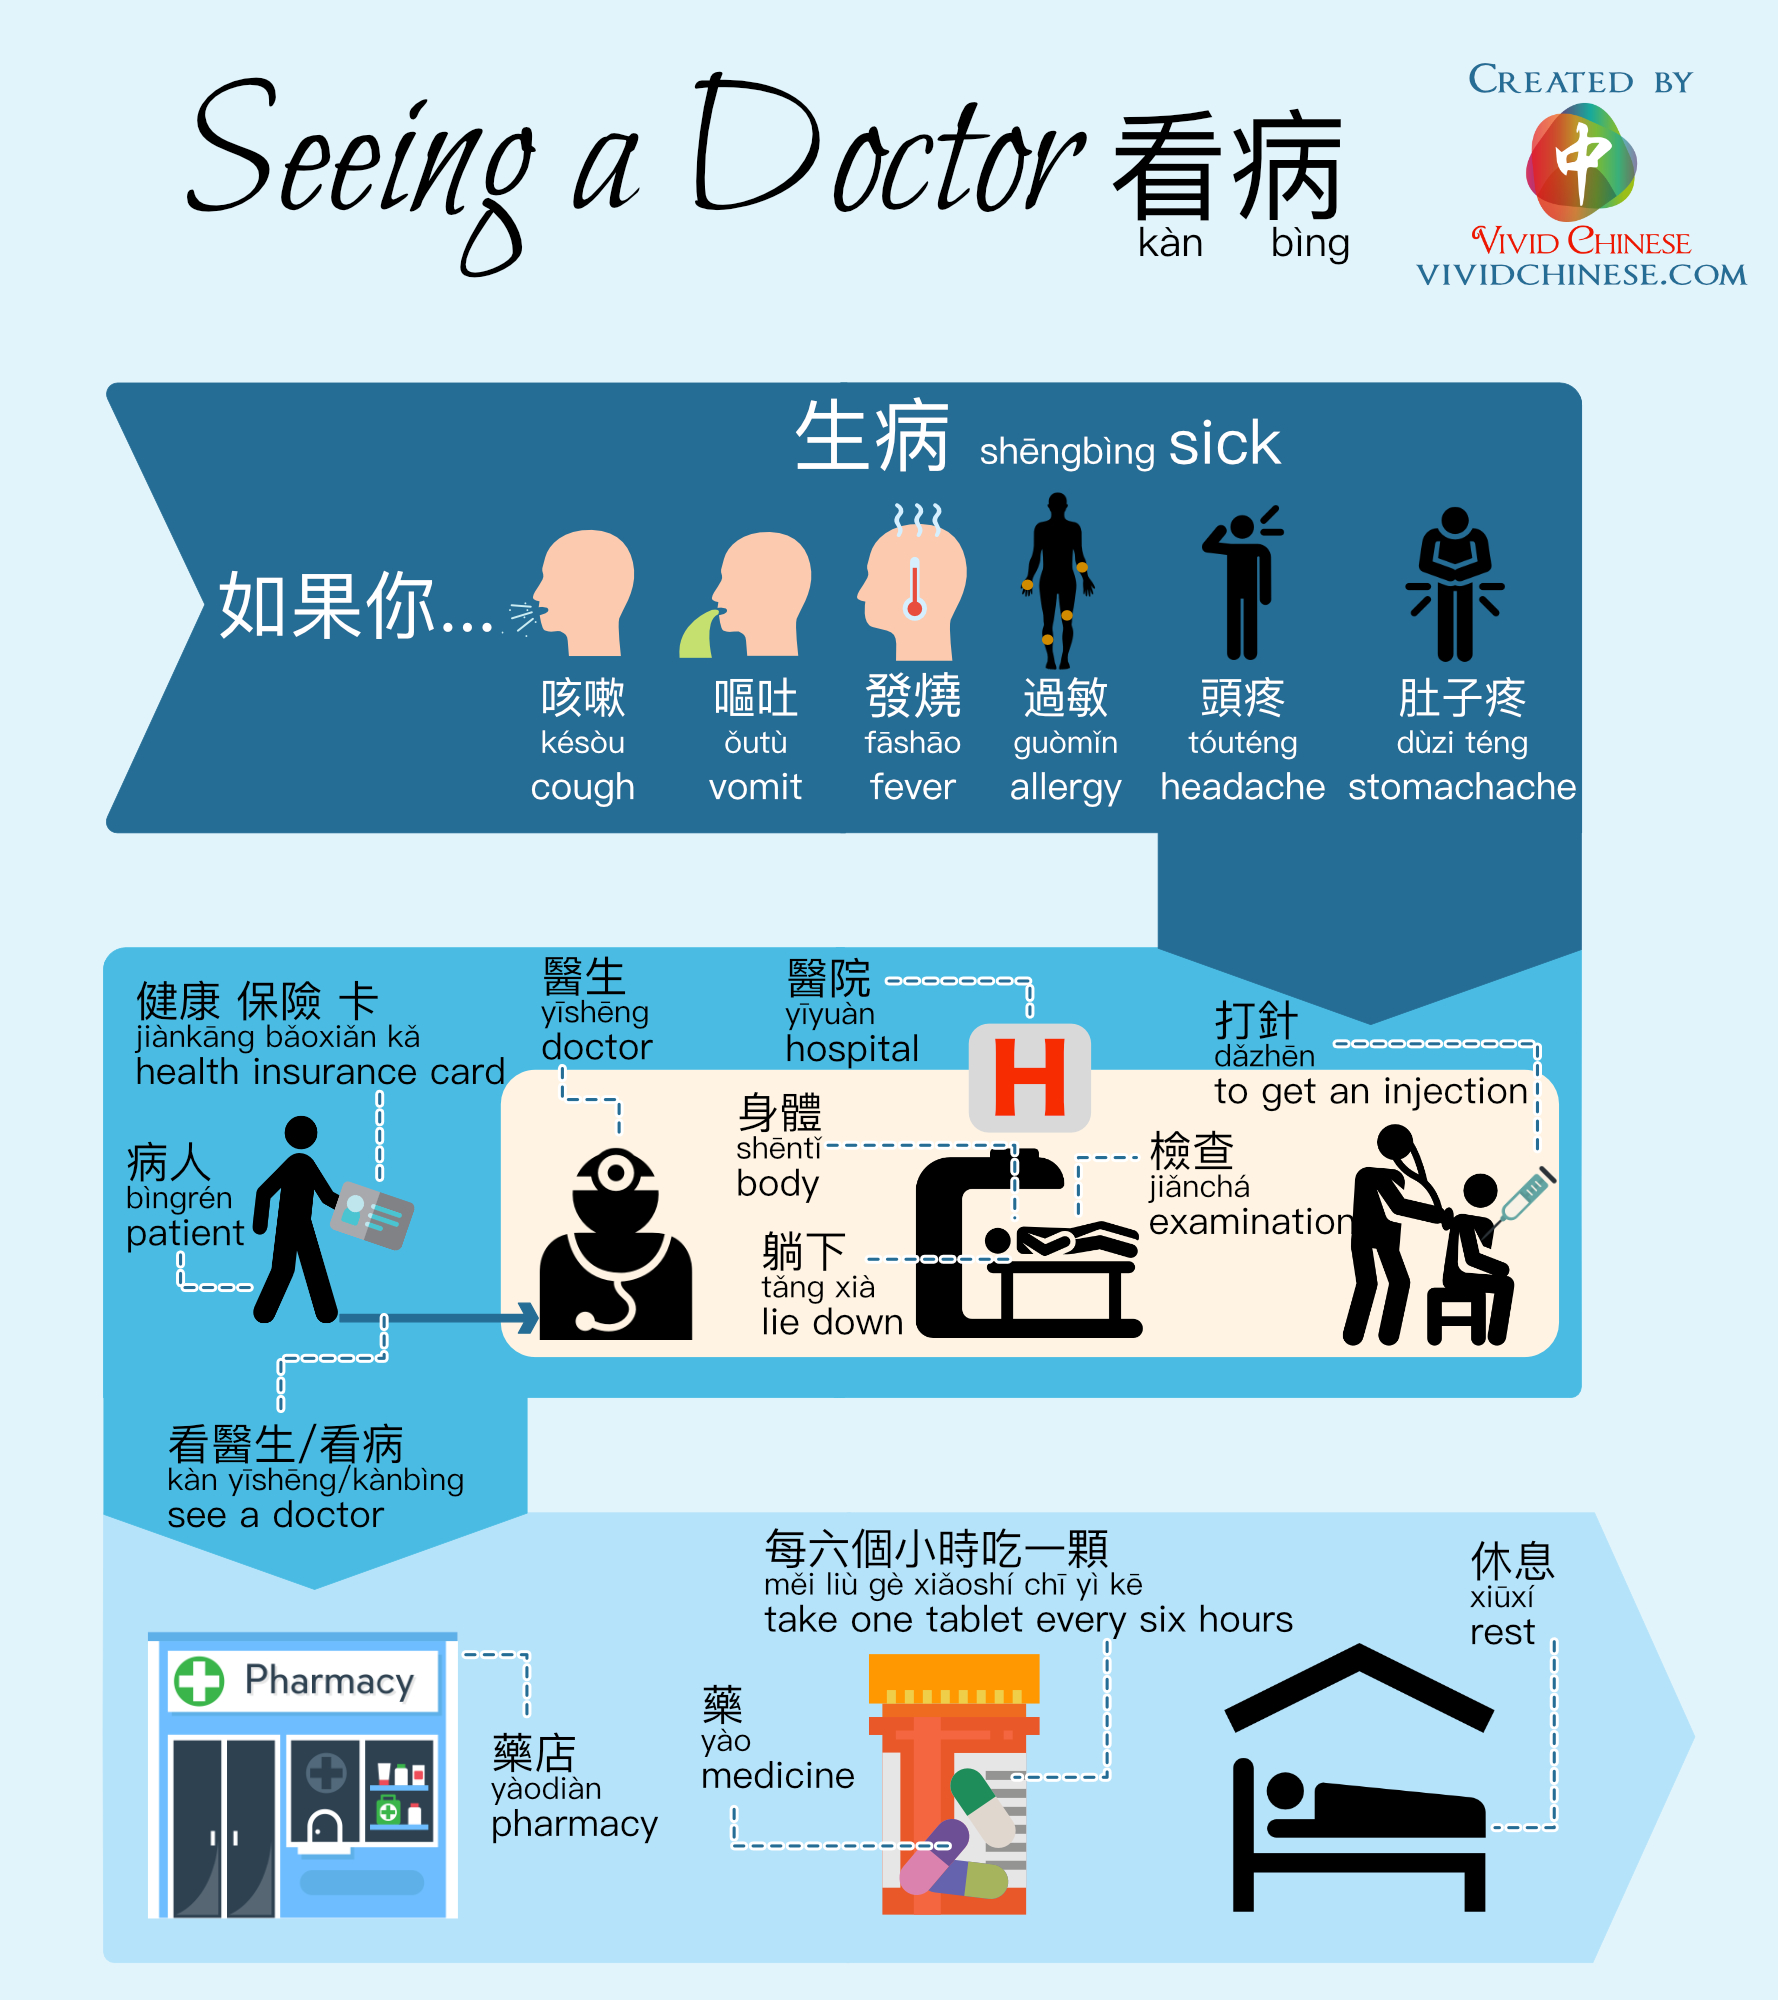 Seeing a doctor Traditional Chinese Version Infographic